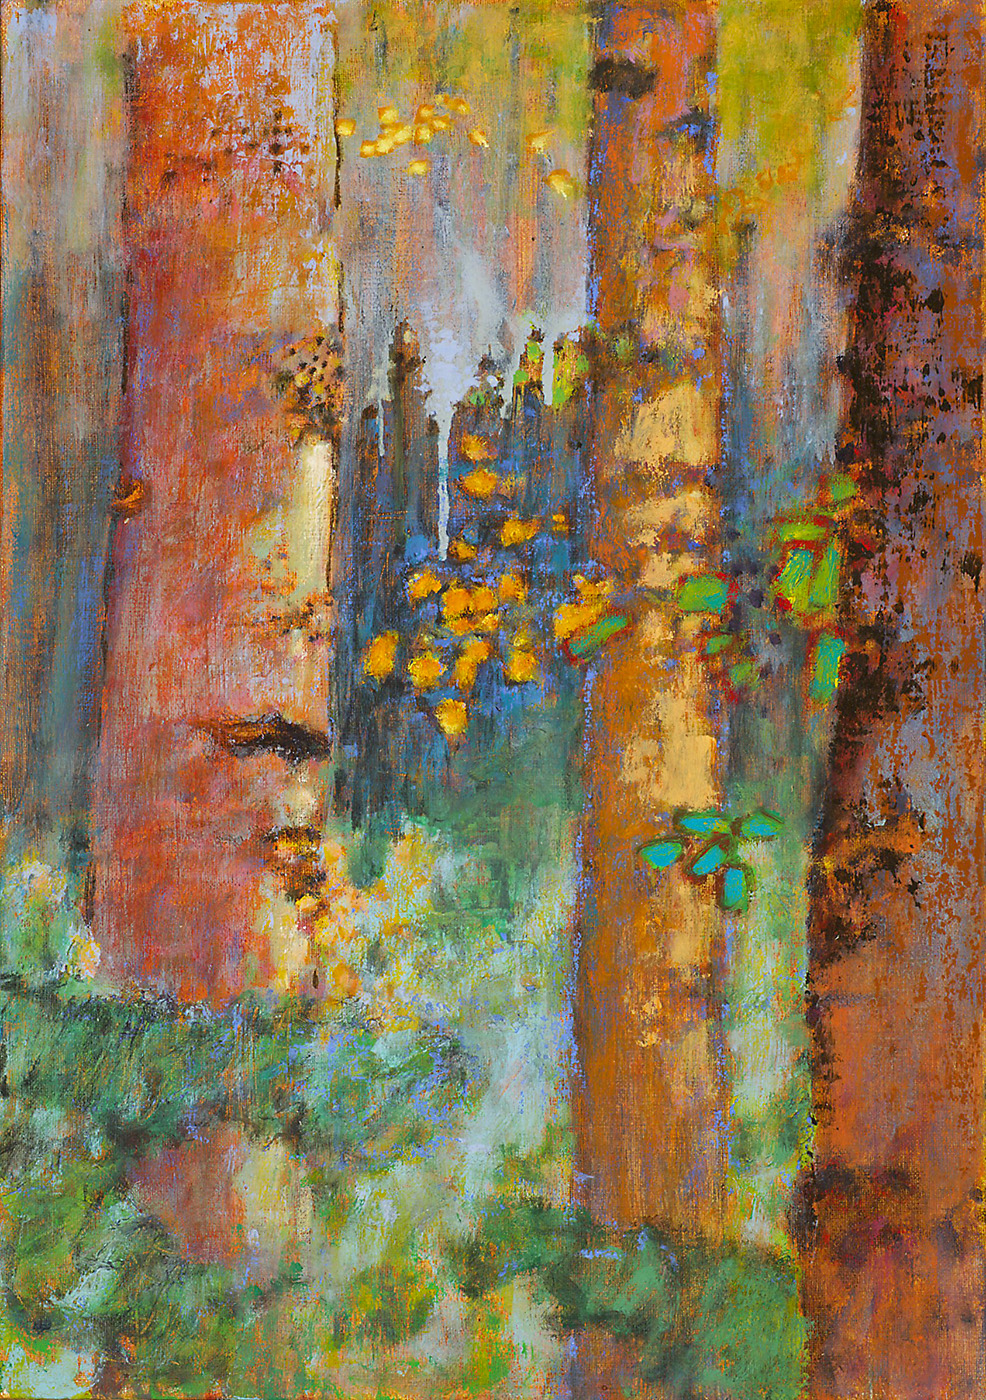 Aspen Encounter | oil on linen | 17 x 12"